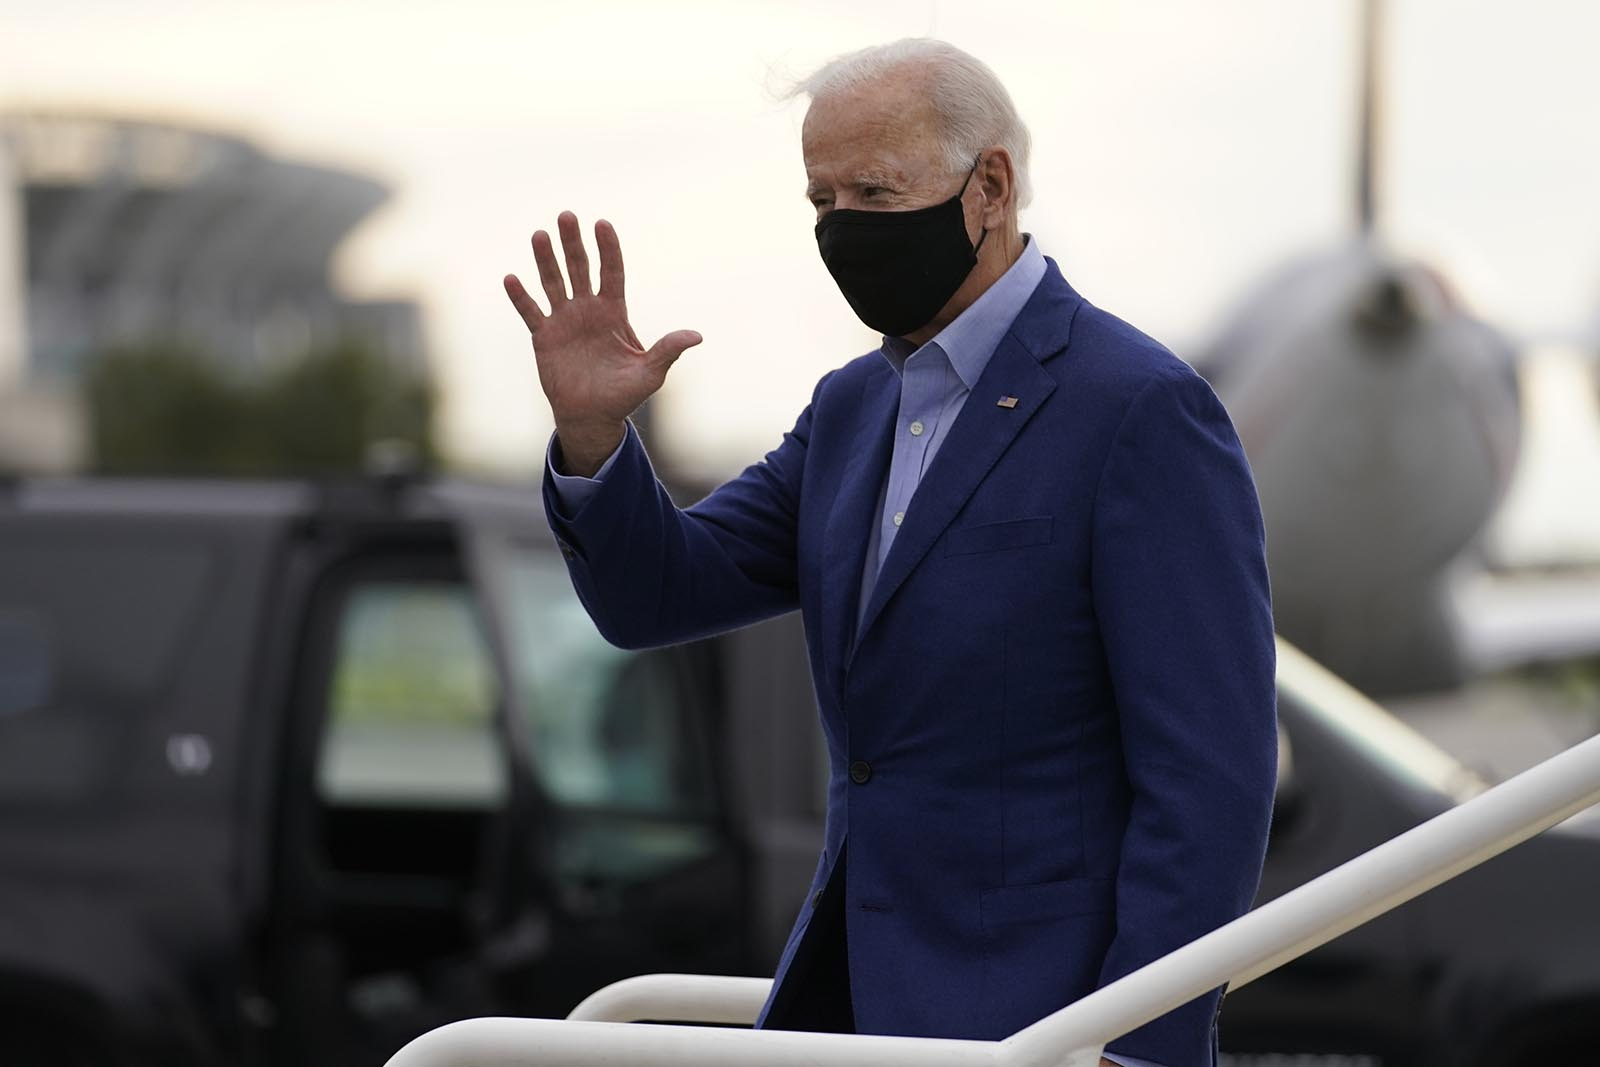 Democratic presidential candidate former Vice President Joe Biden arrives at Cleveland Airport in Cleveland, on Tuesday, September 29.